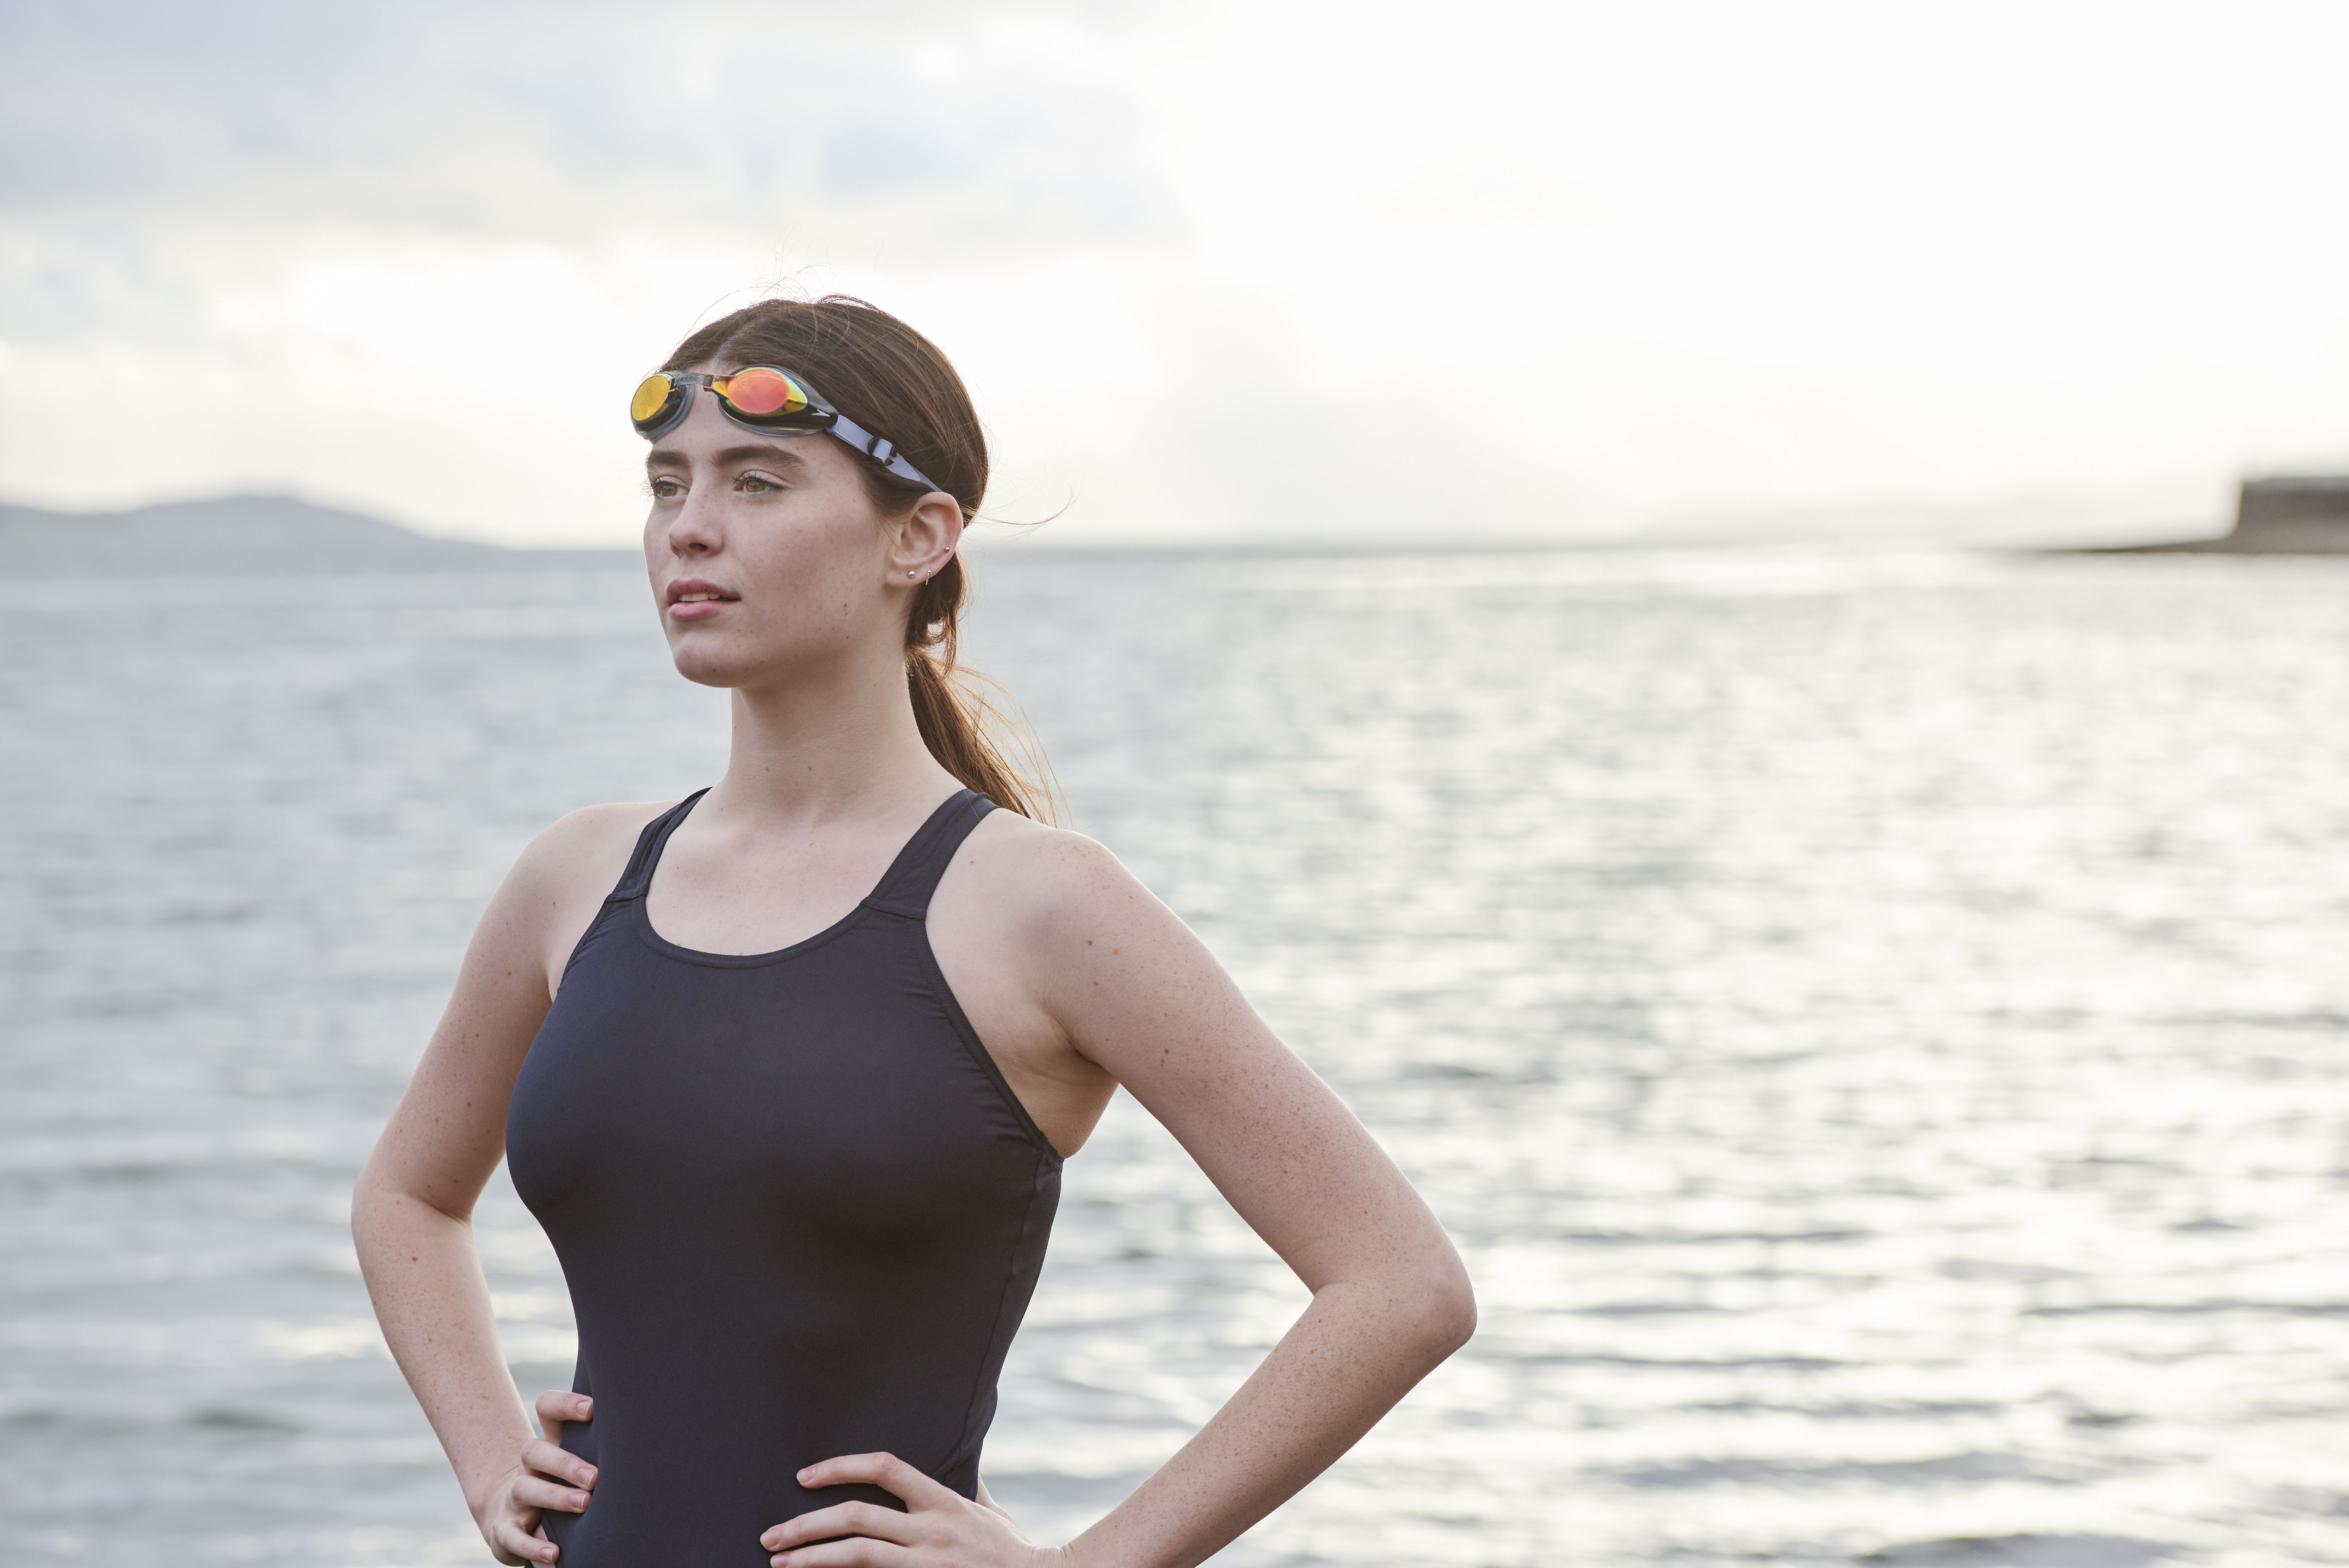 d7c5f55640427 The 7 Best Swimming Goggles of 2019